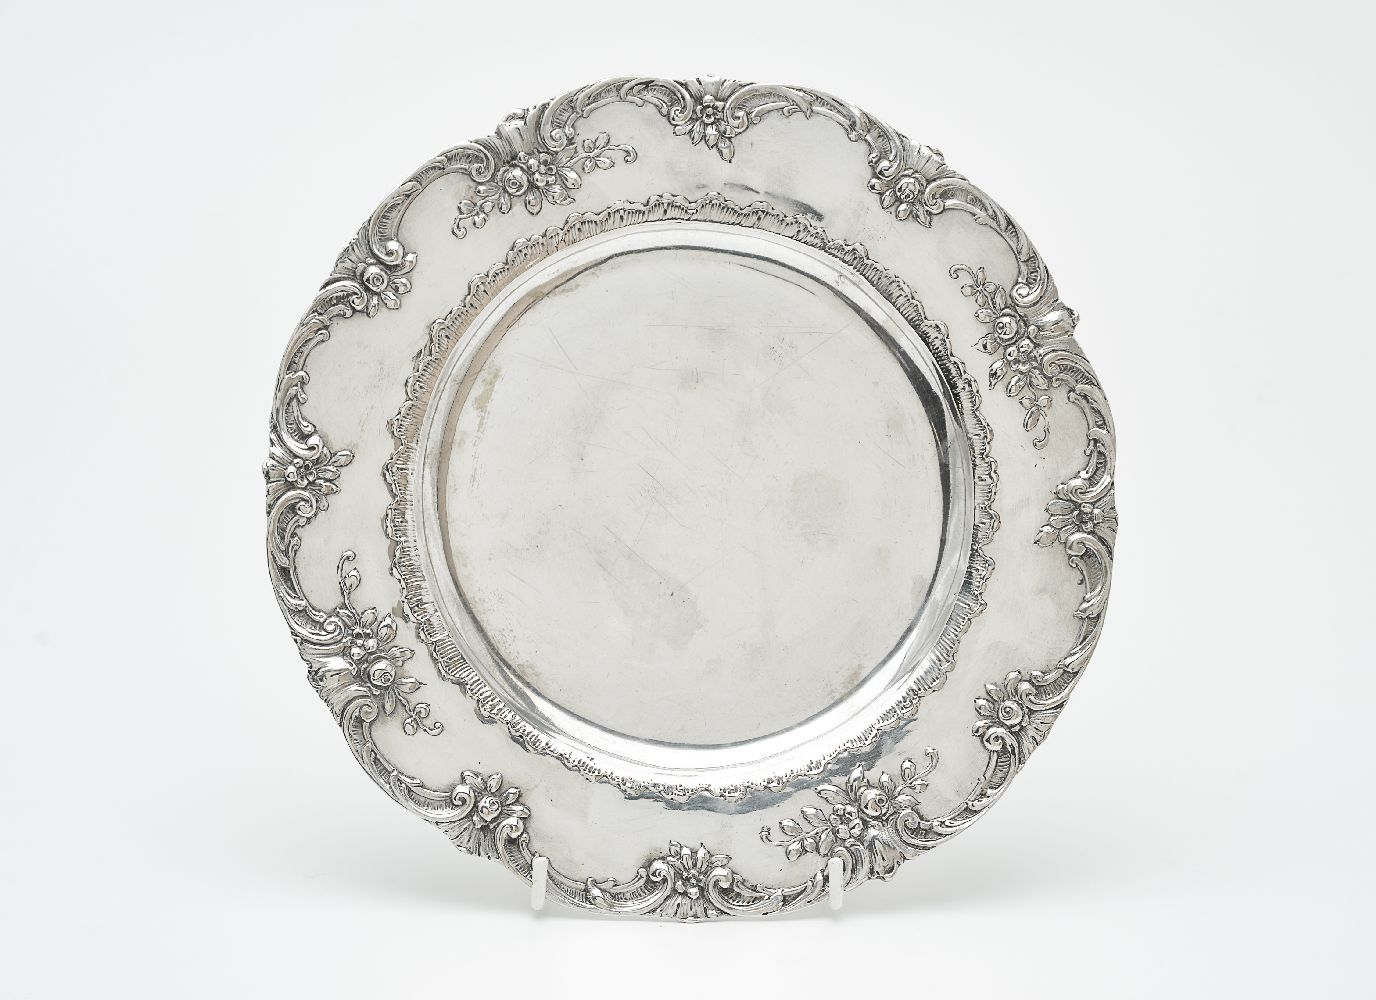 Lot 629 - A German silver shaped circular plate by Georg Roth & Co.